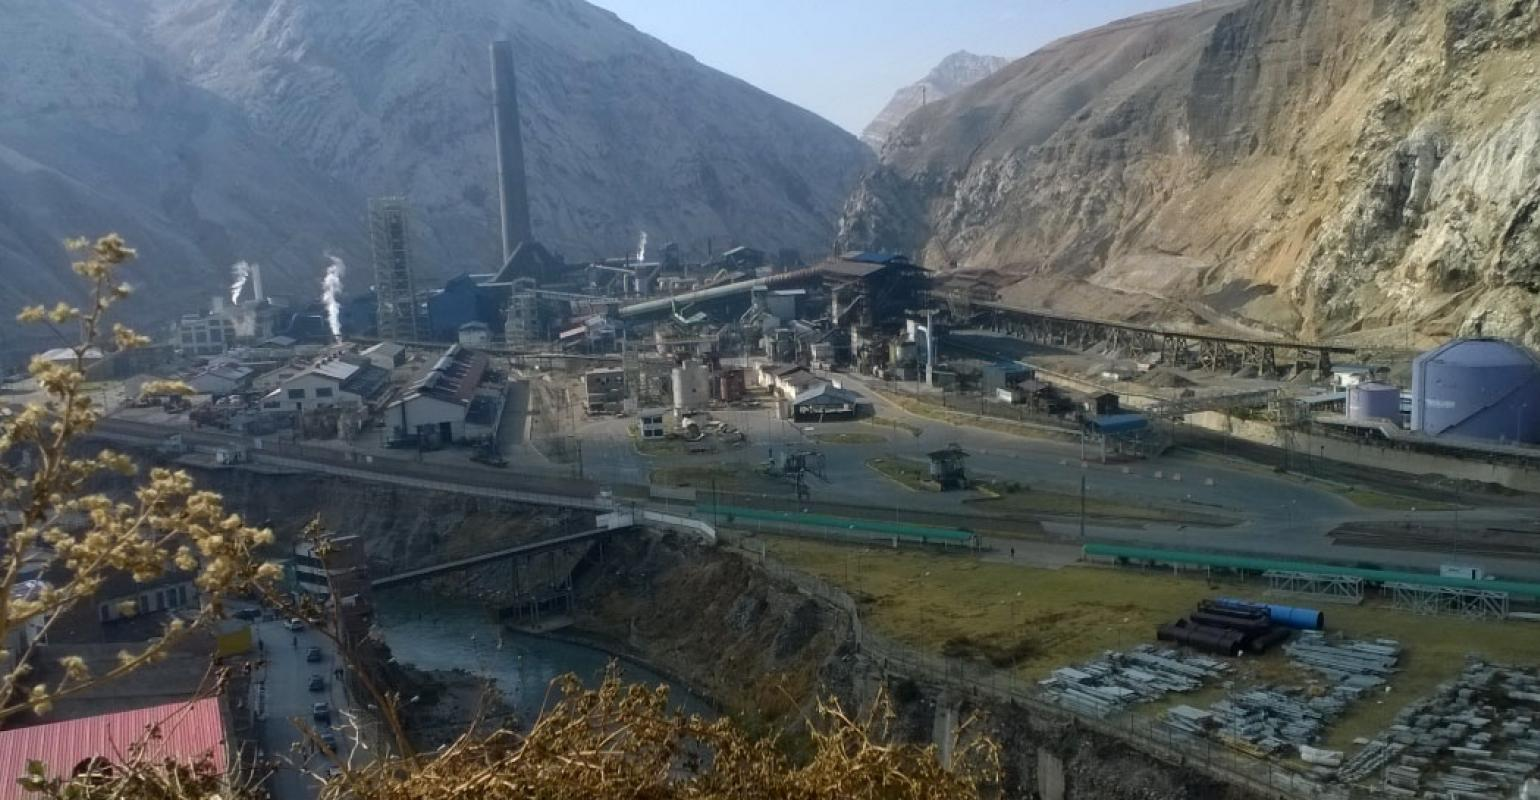 Panoramic view of La Oroya Metallurgical Complex. Materials for the plant's copper circuit